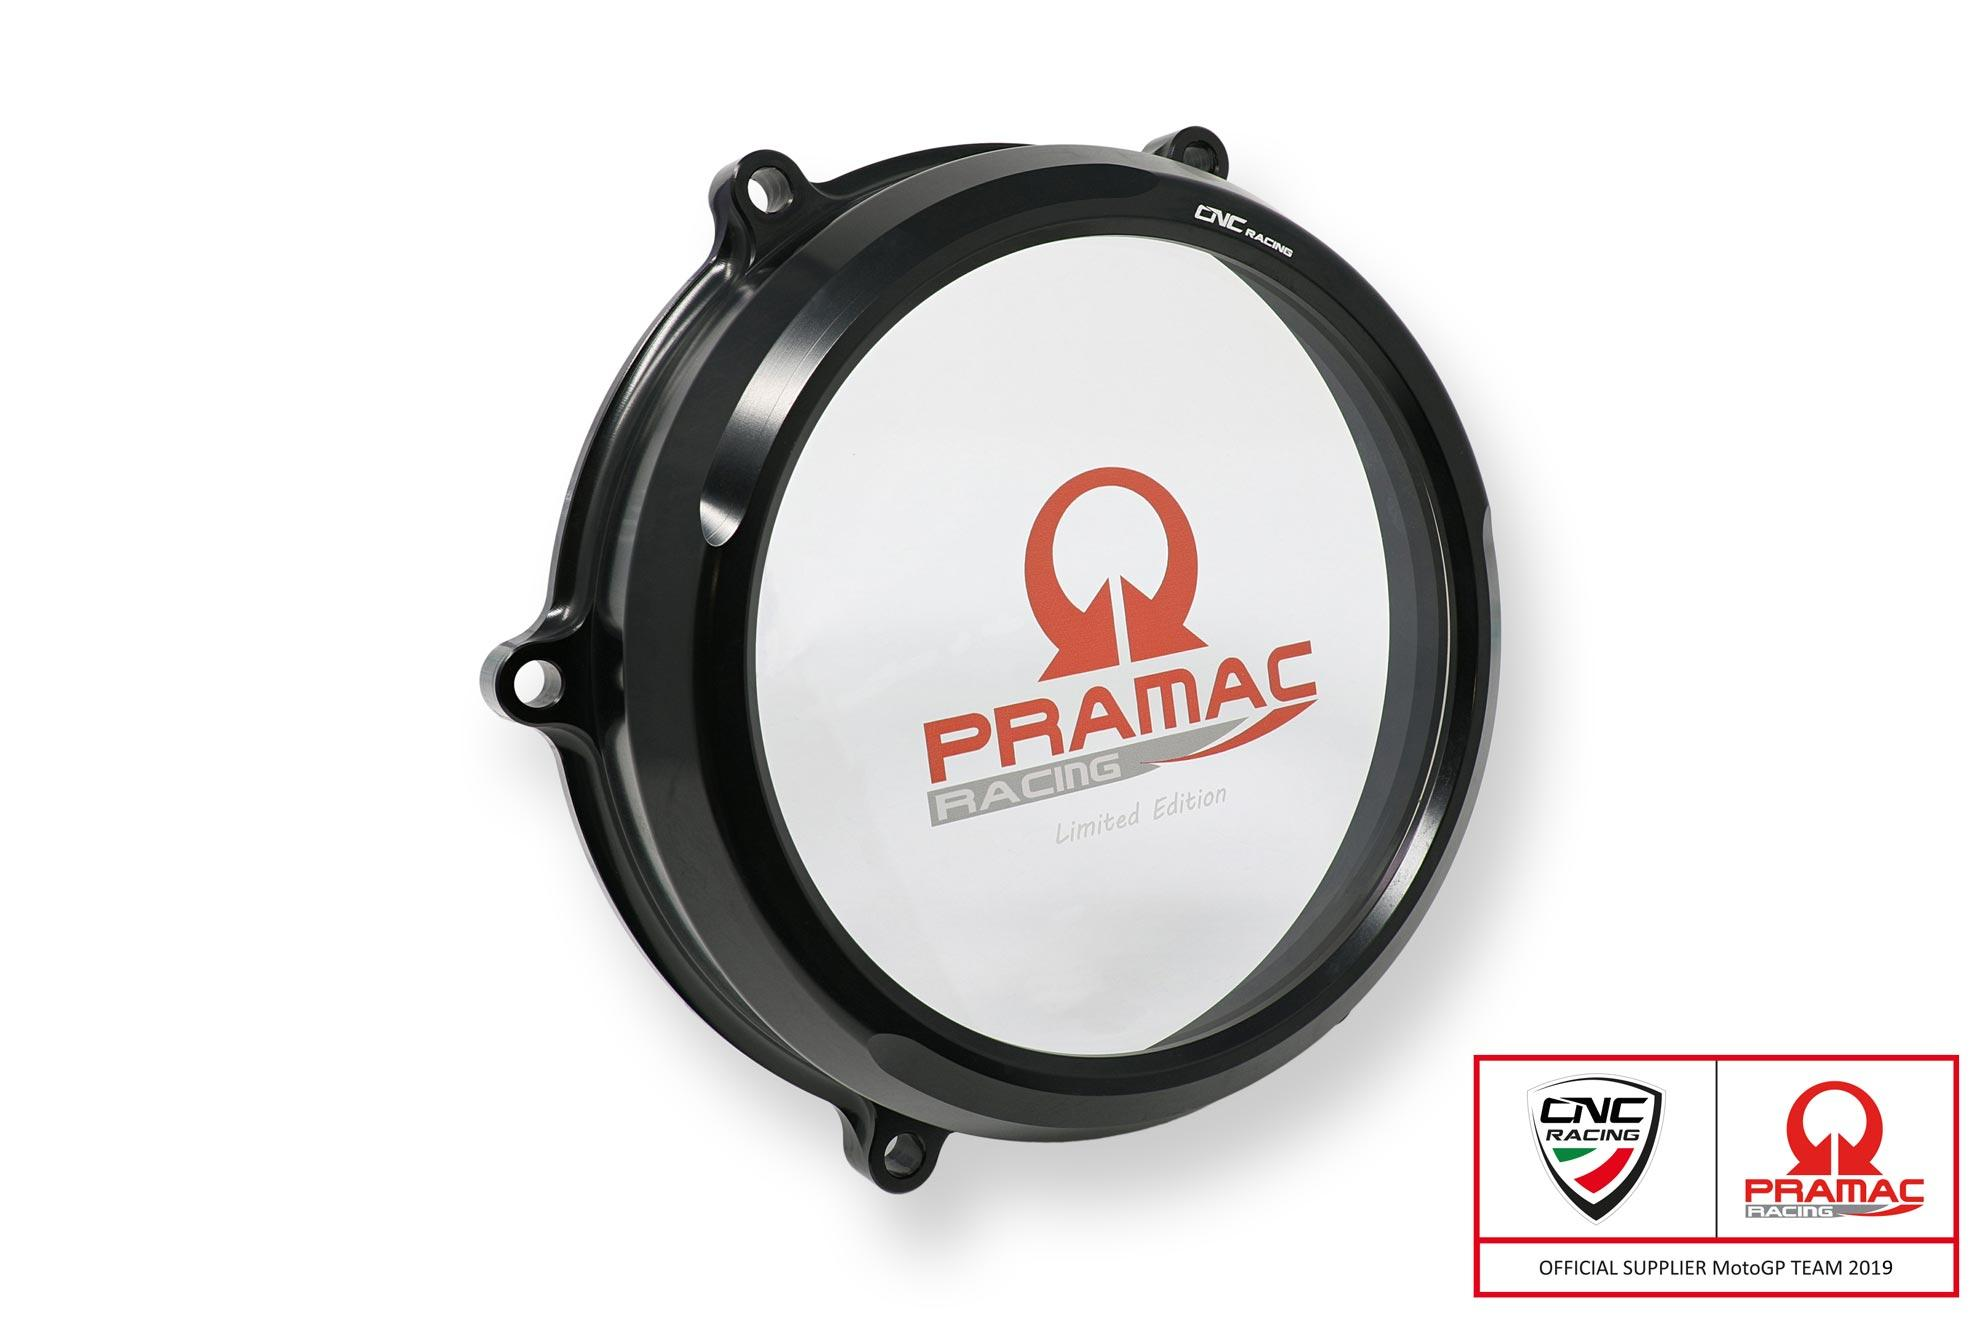 CNC Racing Pramac Clutch Cover - Panigale V4/S, Clutch Cover, CNC Racing - Averys Motorcycles